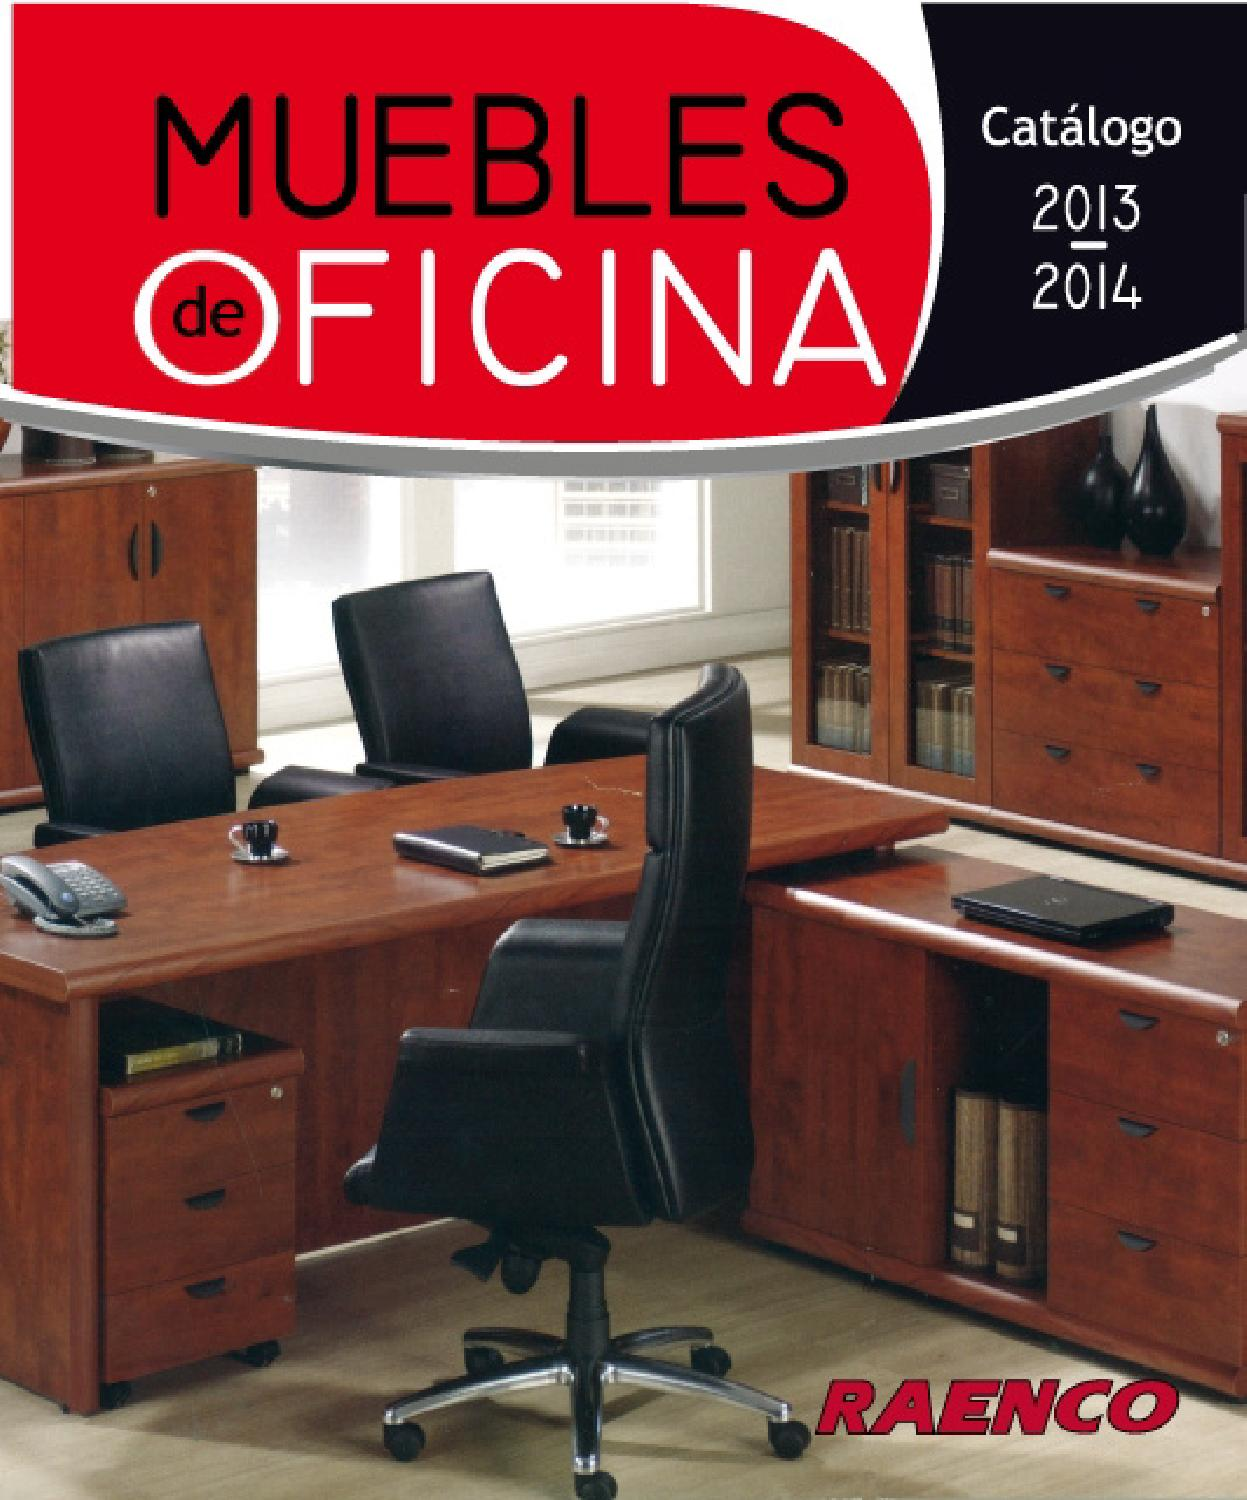 Cat logo raenco oficina by interiores estilo issuu for Muebles oficina wks